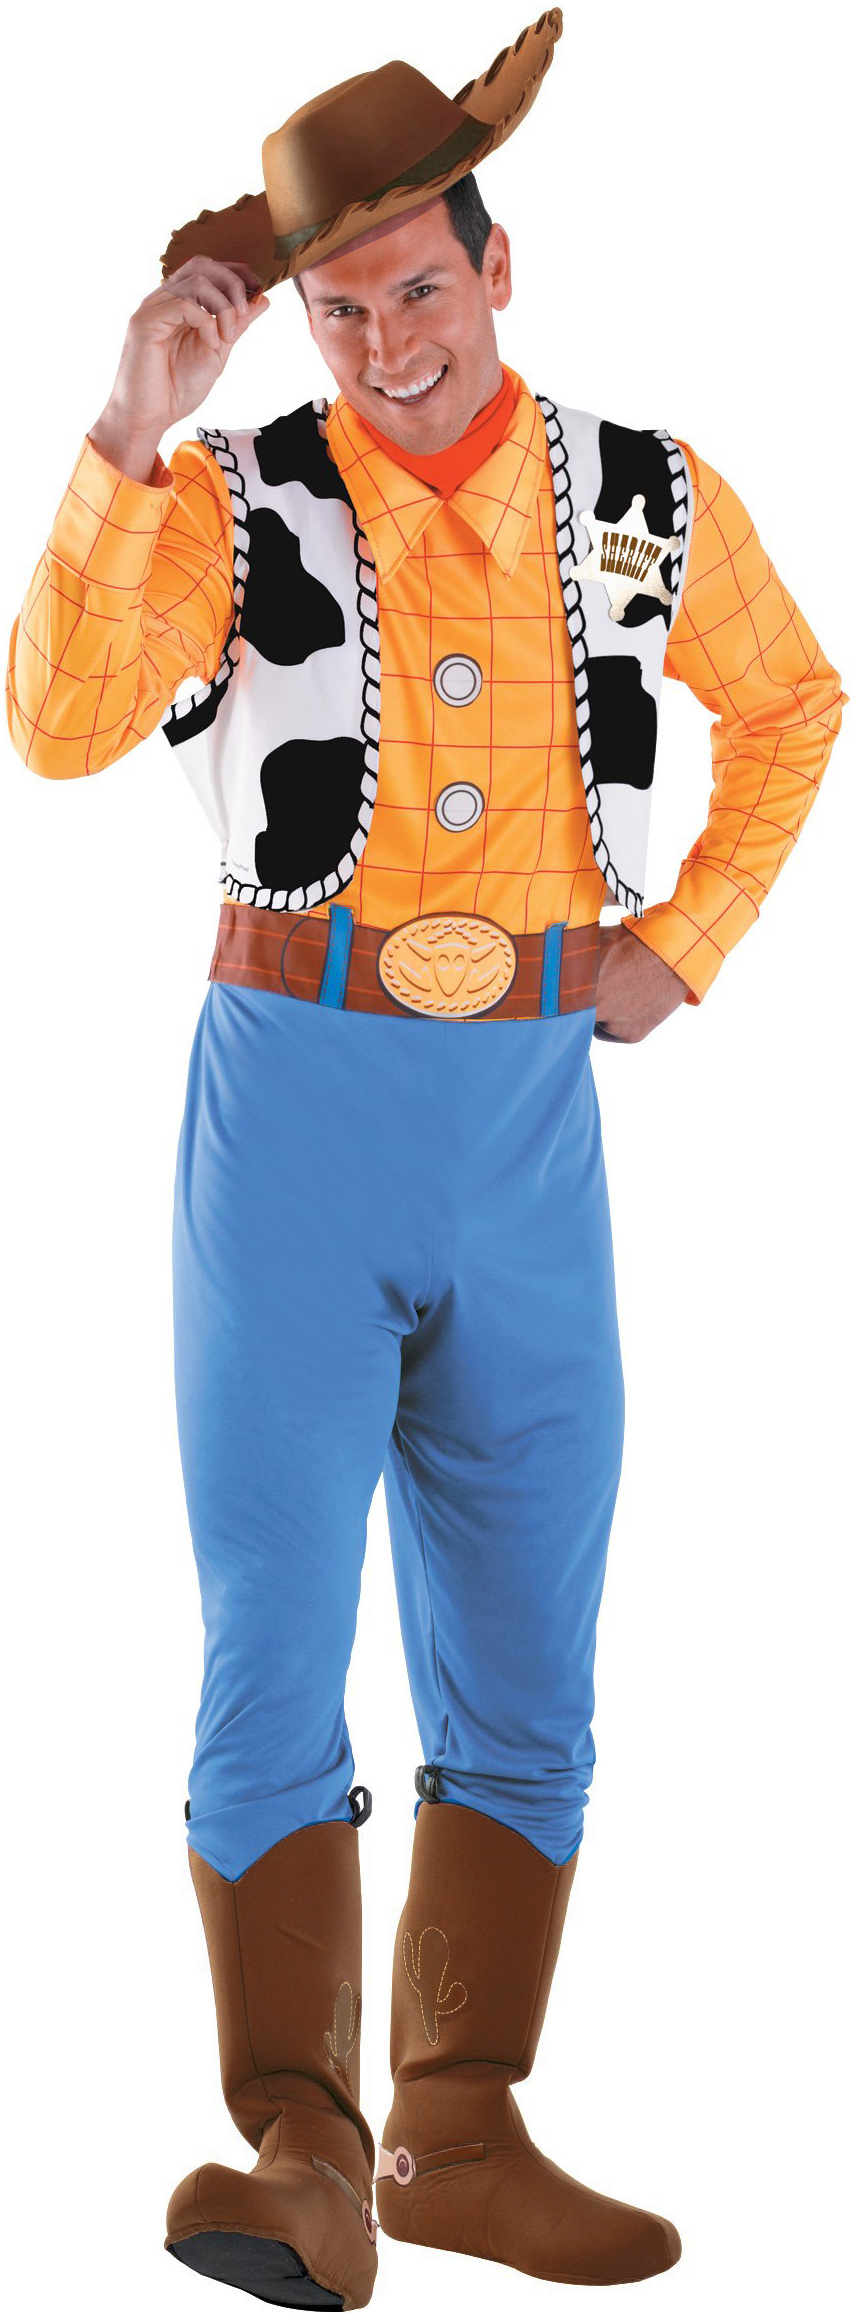 Men's Disney Toy Story - Woody Deluxe Adult Costume - Yellow - XX-Large (50-52) BS-179070